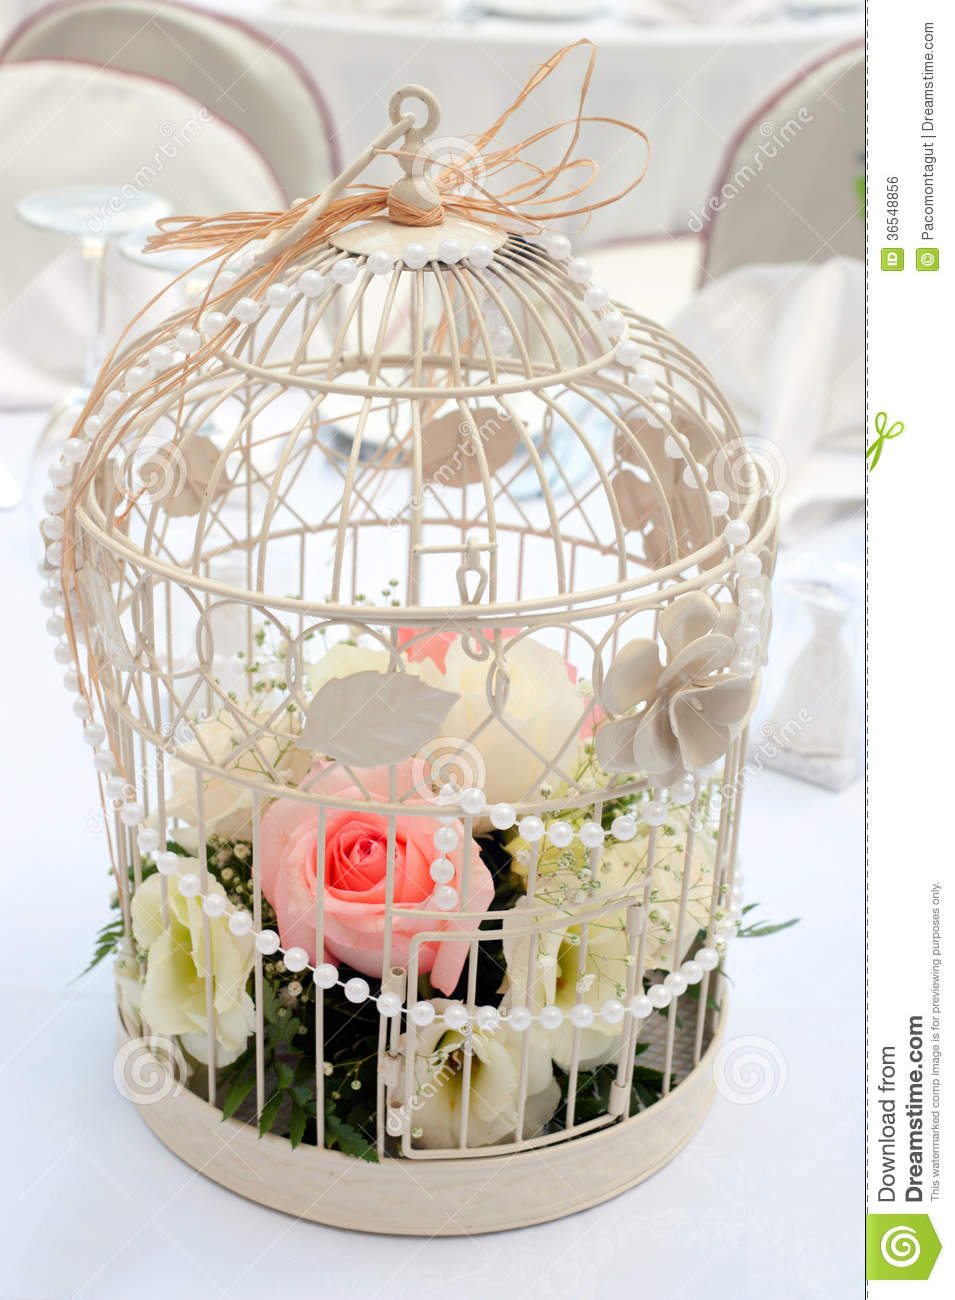 Cage With Flowers Arrangement Stock Photo - Image: 36548856